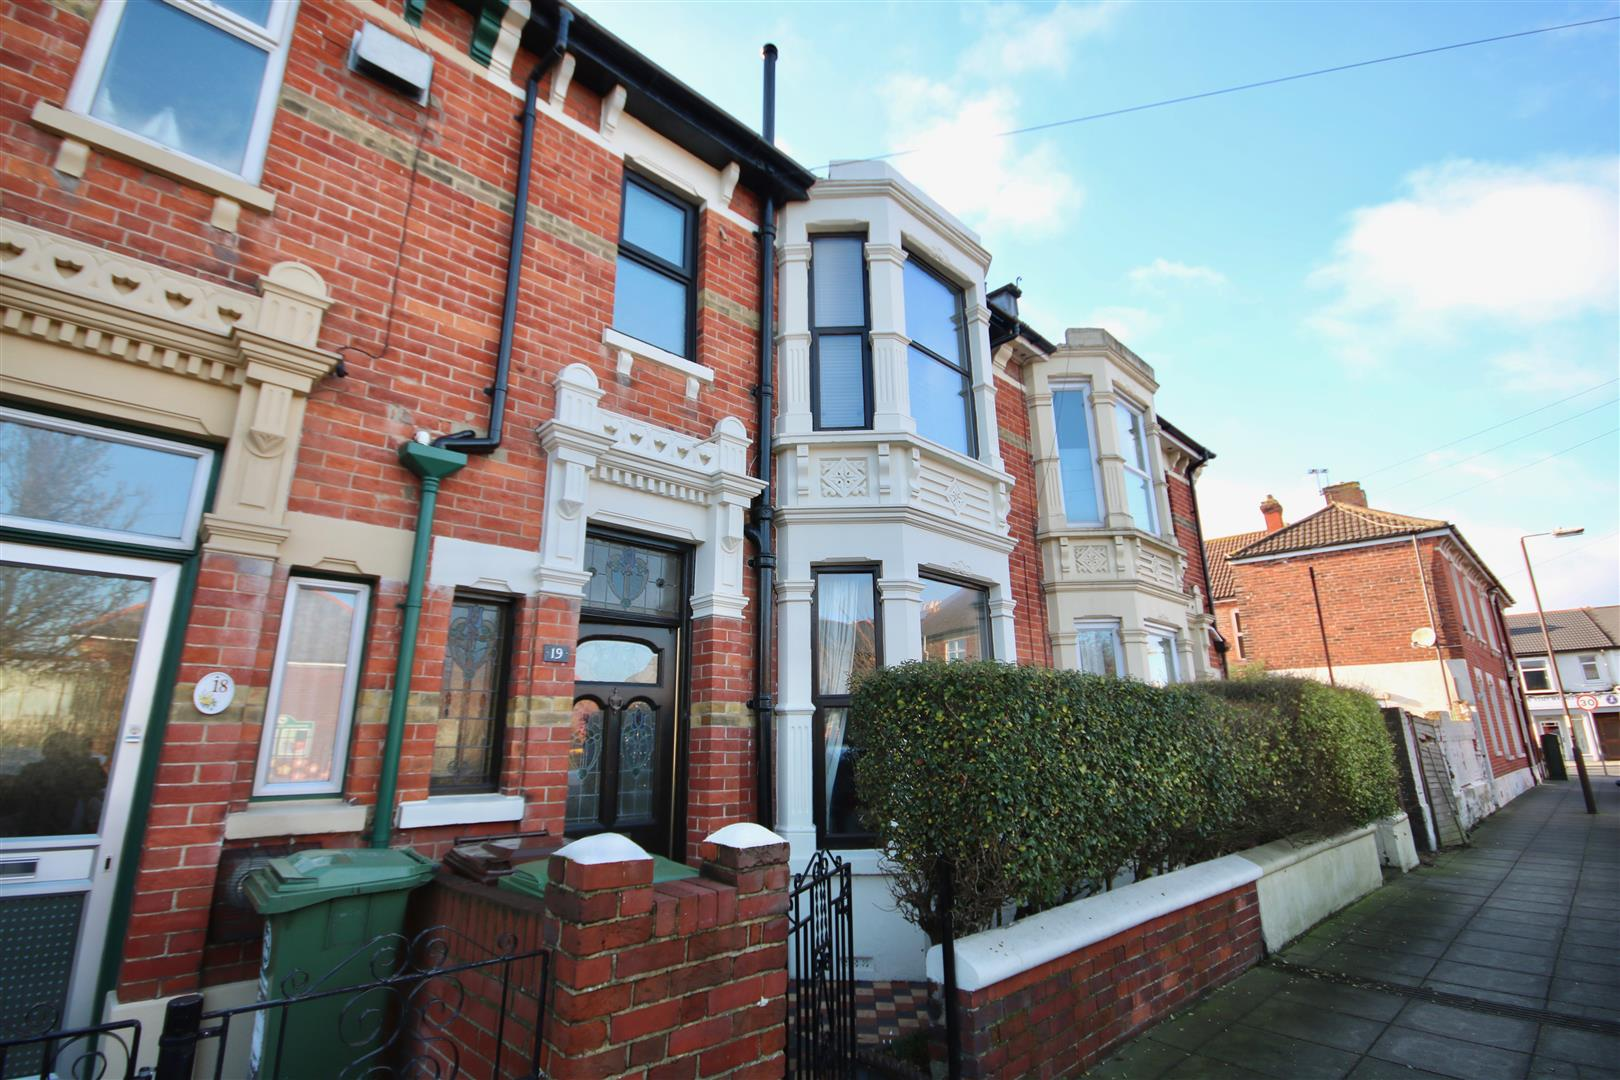 3 Bedrooms Terraced House for sale in Evans Road, SOUTHSEA, Portsmouth, Hampshire